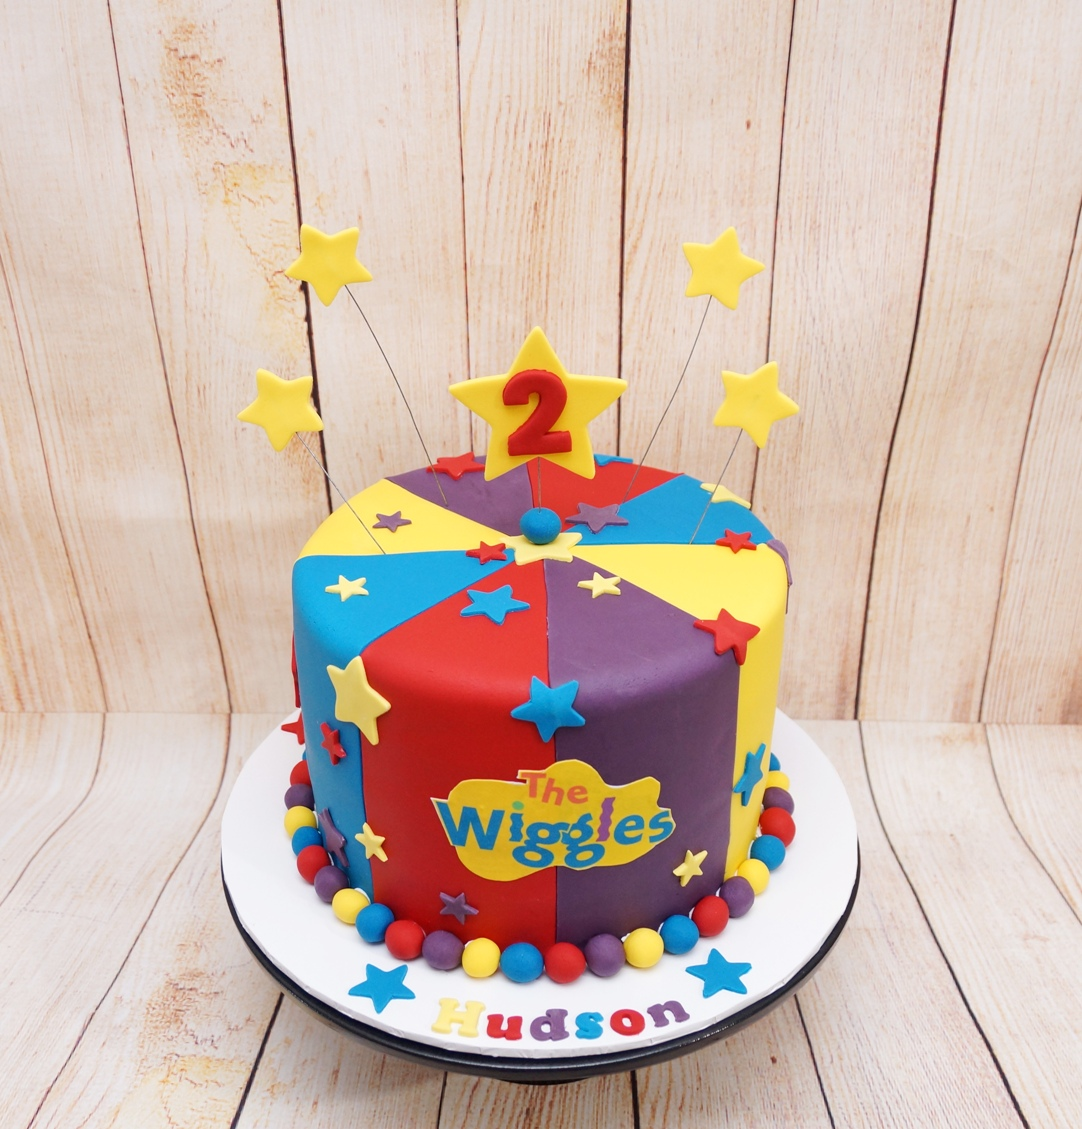 Wiggles 1